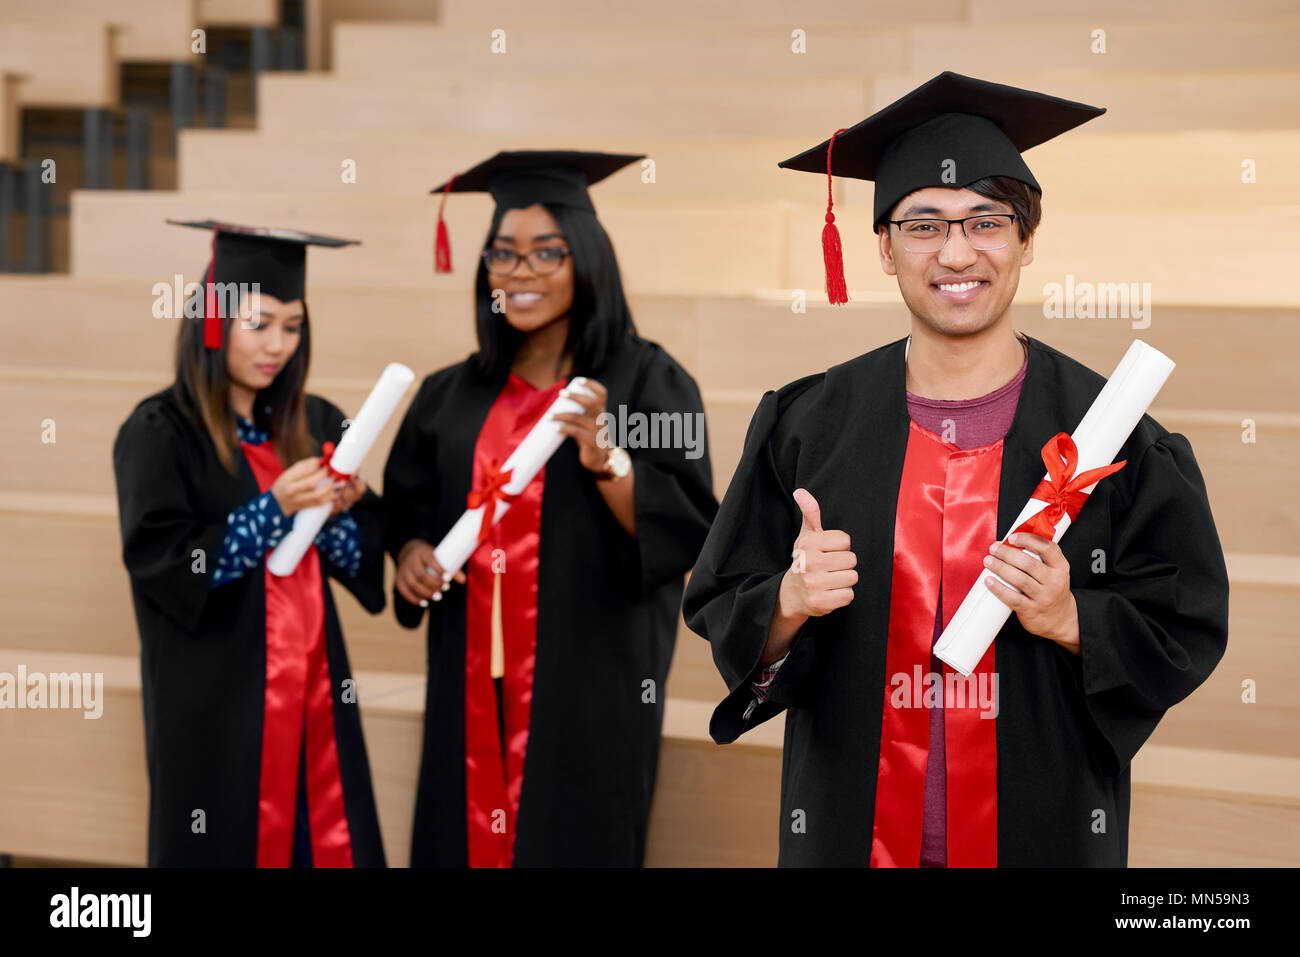 64929f93d6 Smiling different nationalities graduates holding diplomas standing ...